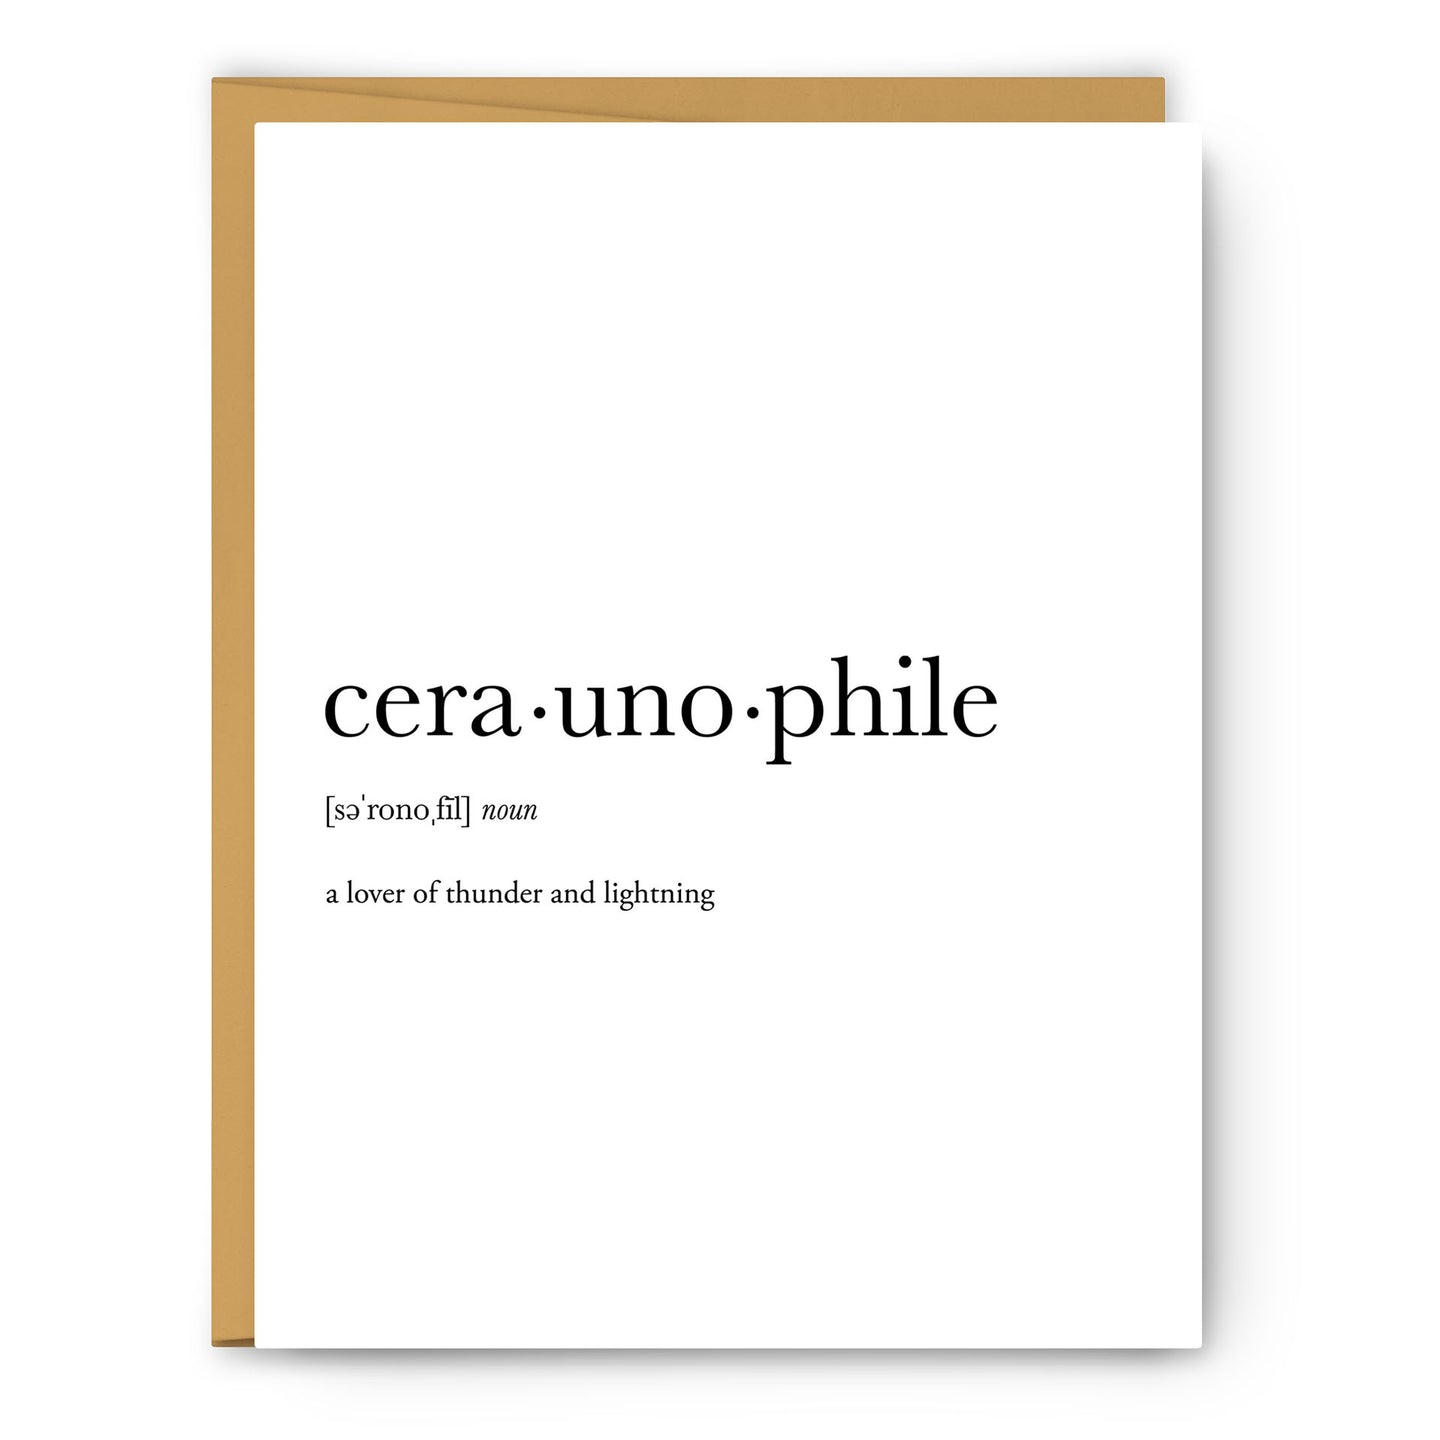 Ceraunophile Definition - Unframed Art Print Or Greeting Card